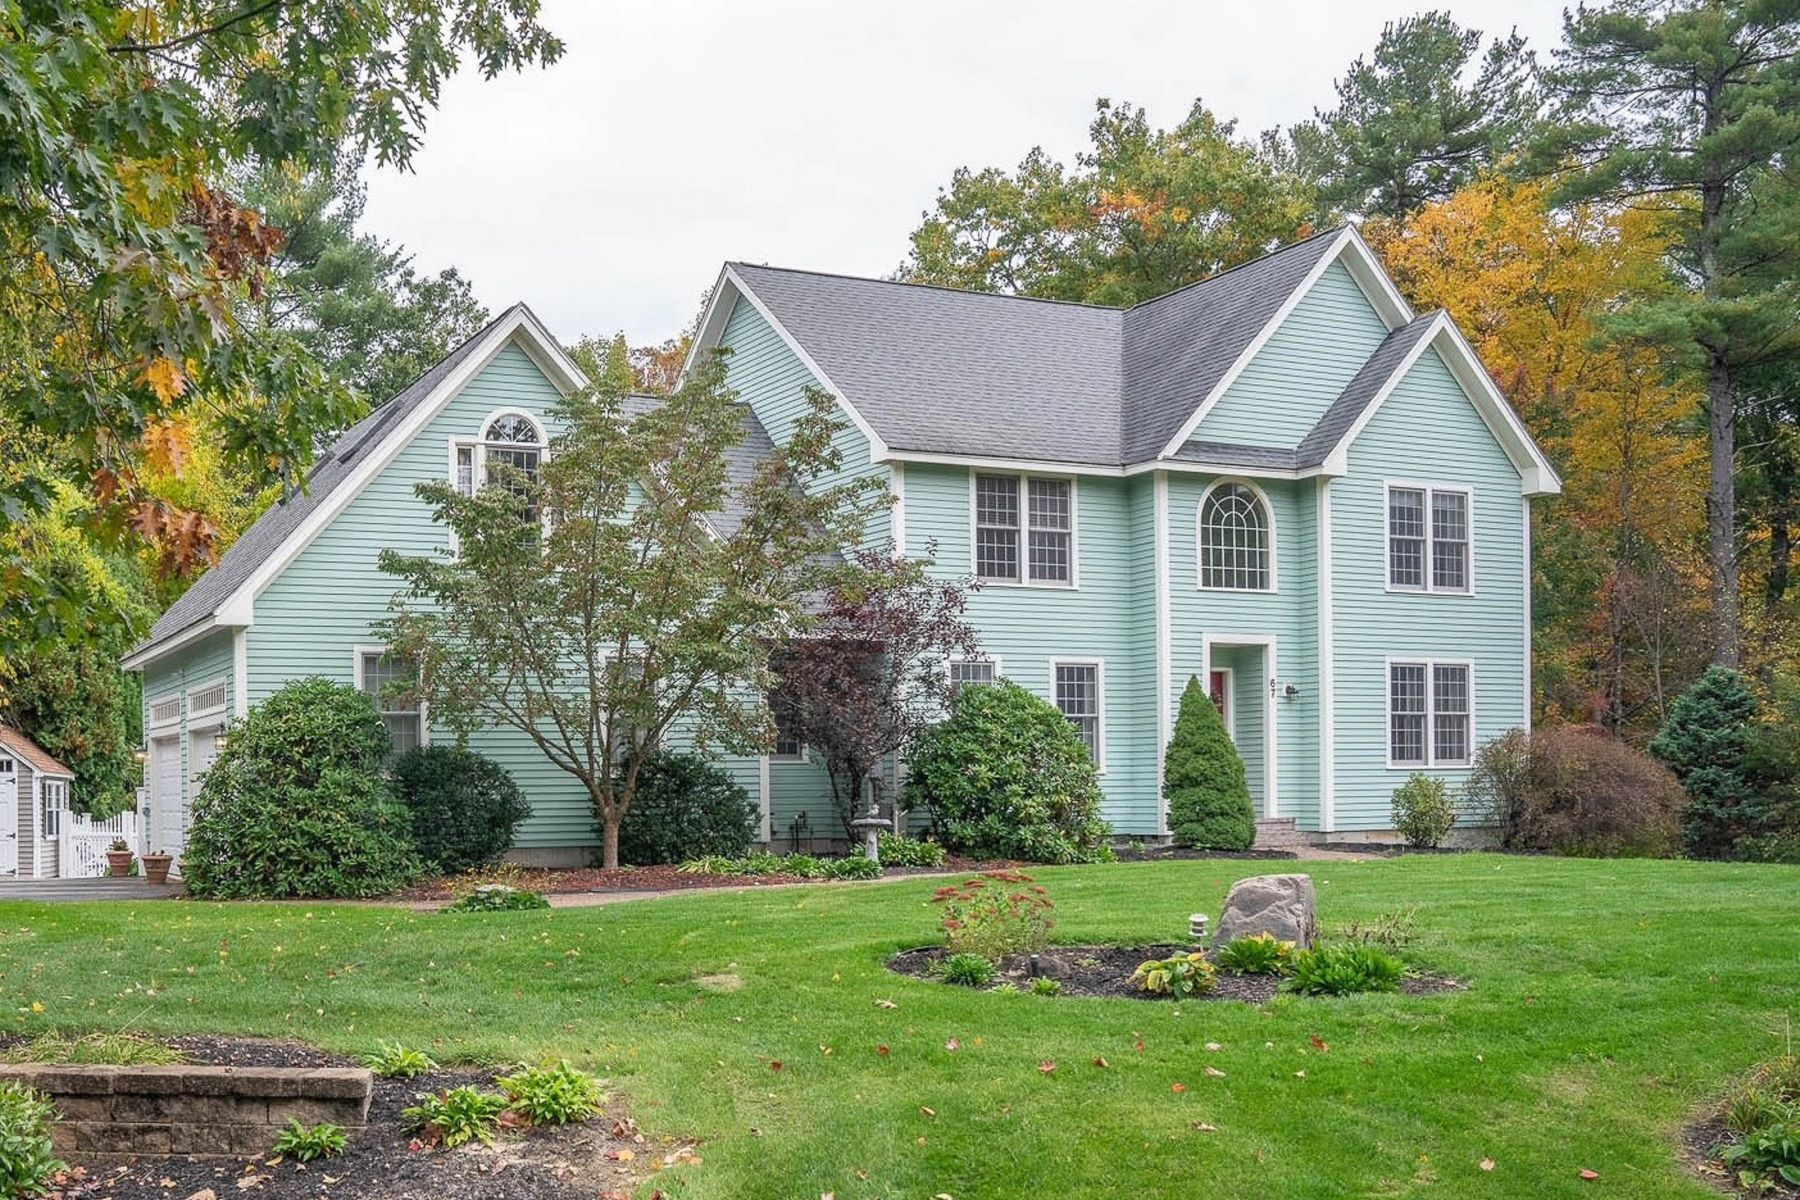 Single Family Homes for Sale at 67 Green Meadow Lane Bedford, New Hampshire 03110 United States